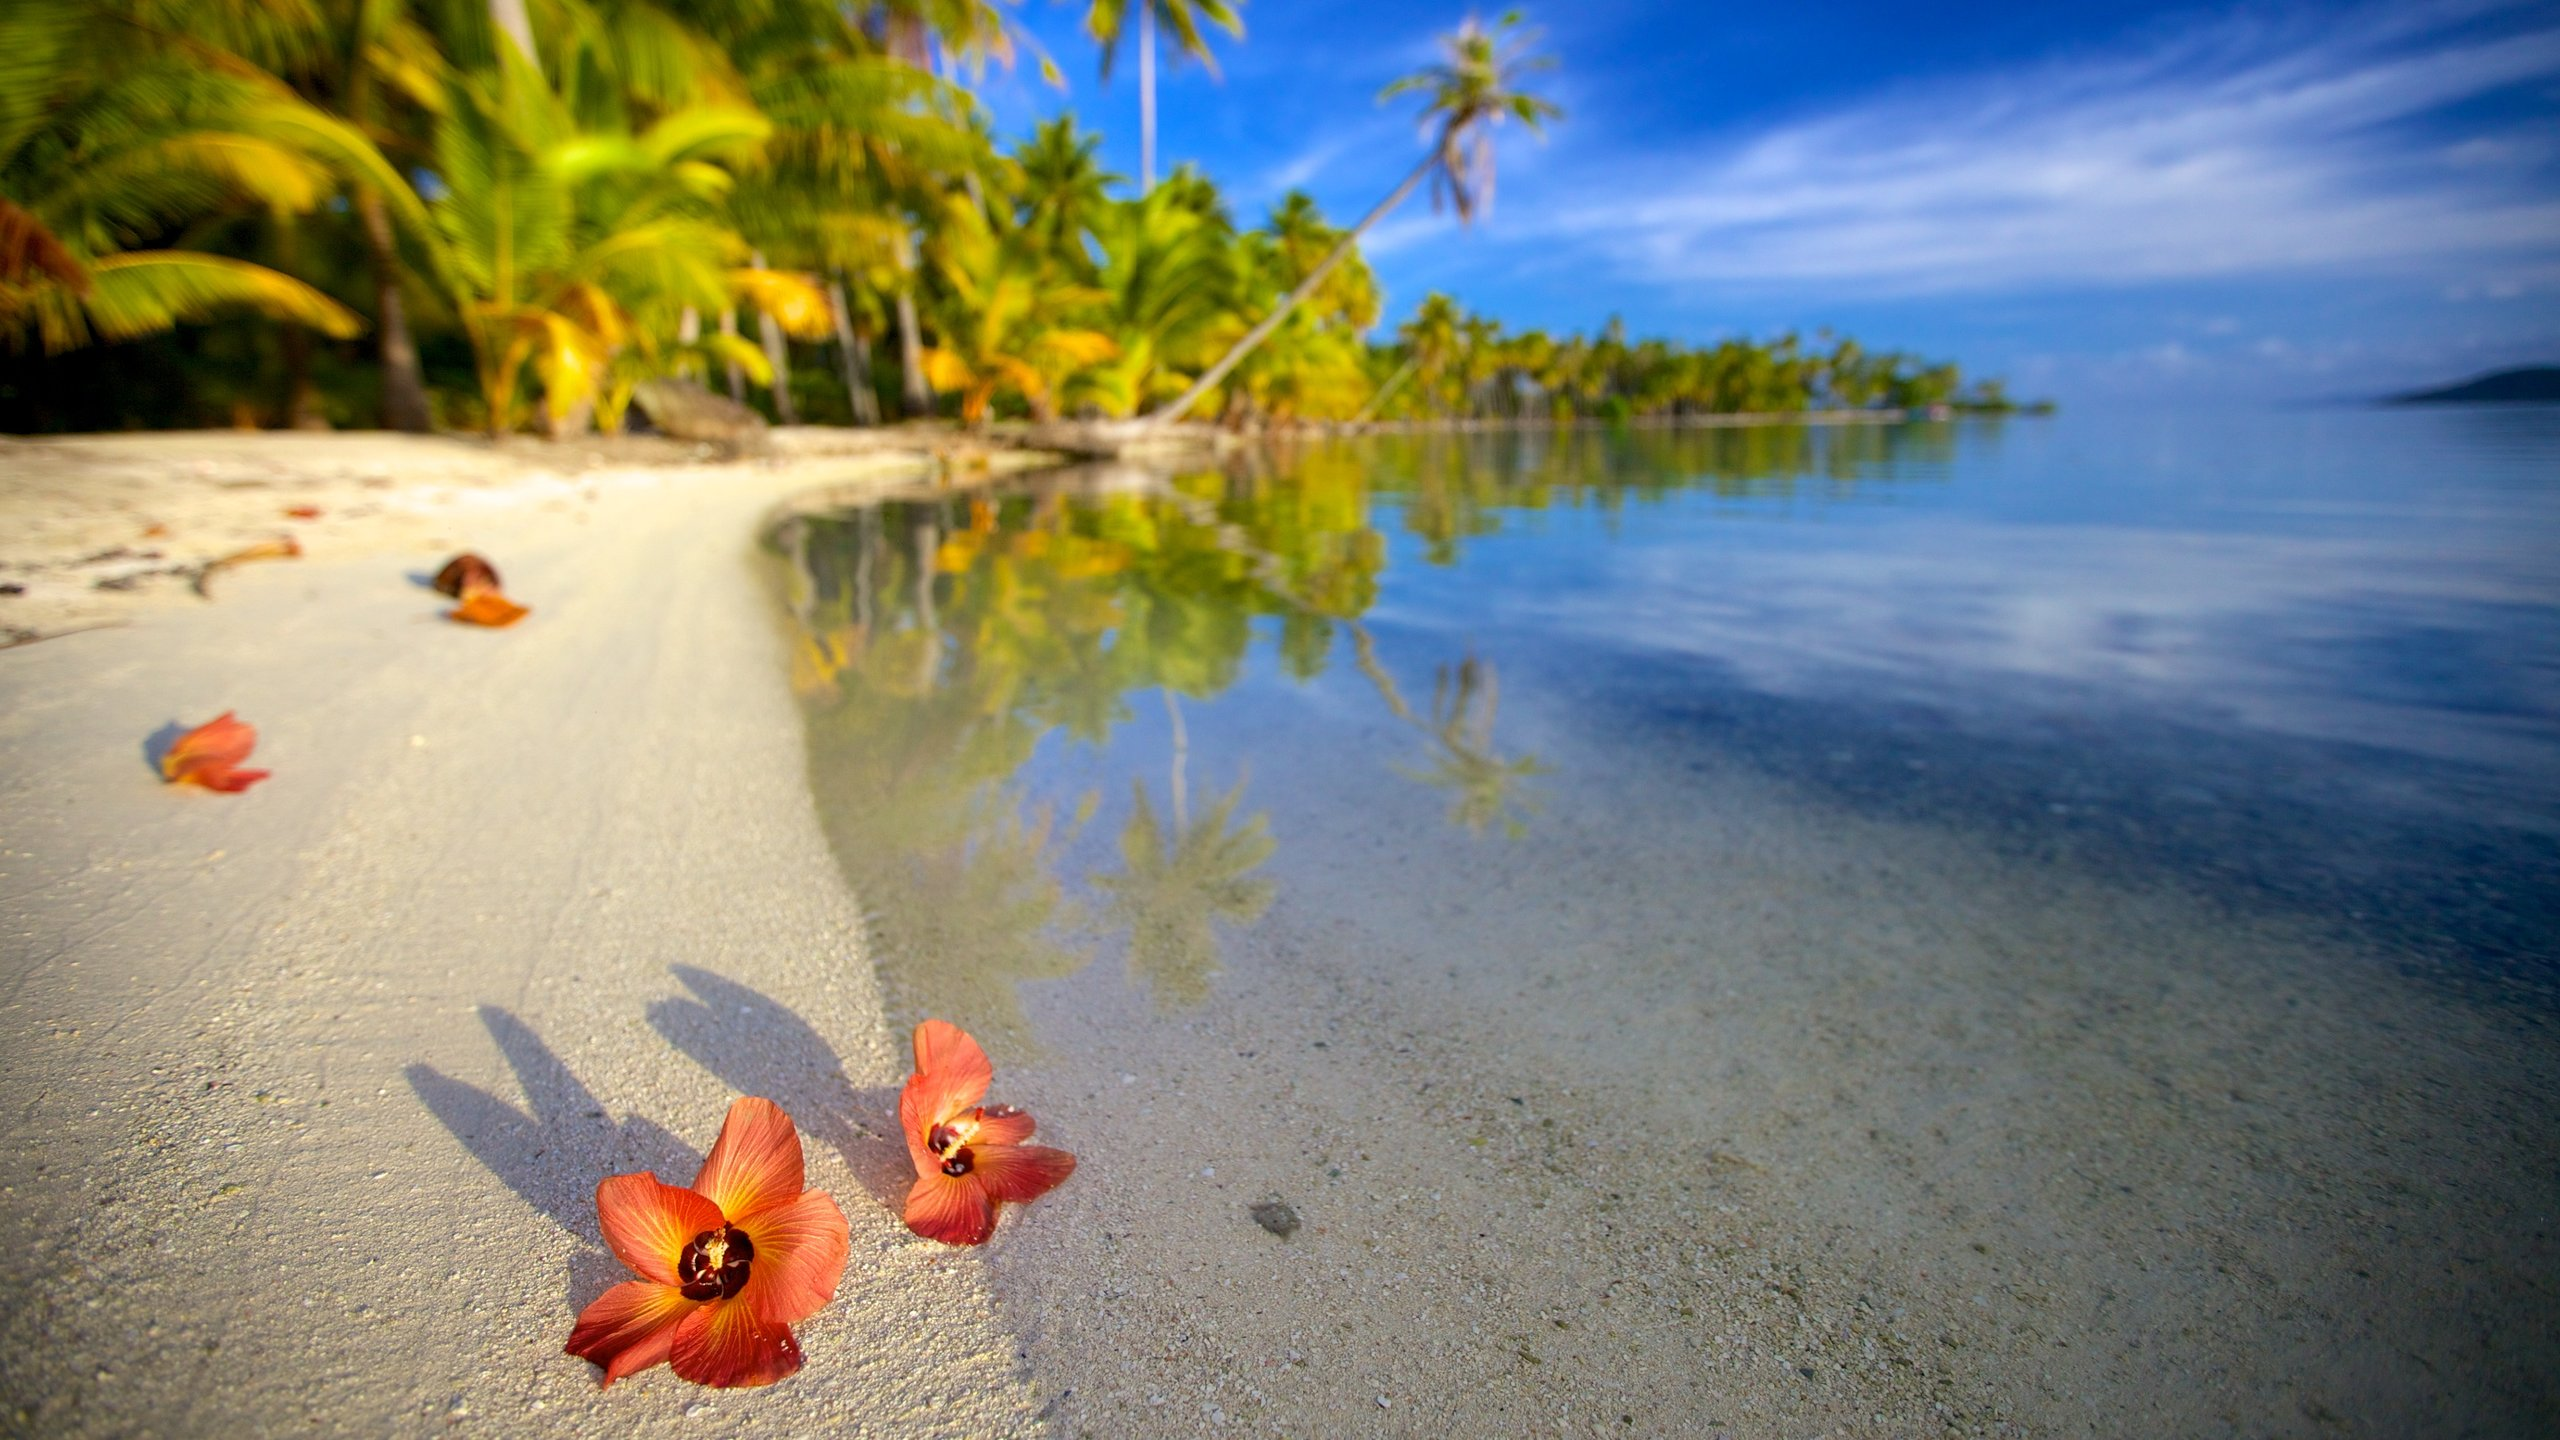 Top 10 Beach Hotels in Tahiti $61: Hotels & Resorts near the ... Tahiti Map Of Hotels on map of mexico hotels, map of new york city hotels, map of the big island hotels, map of kauai hotels, map of hawaii hotels, map of tulum beach hotels, map of oahu island hotels, map of cayman islands hotels, map of key largo hotels, map of moorea hotels, map of raleigh hotels, map of panama city beach hotels, map of dubai hotels, map of georgia hotels, map of rarotonga hotels, map of iceland hotels, map of paris hotels, map of reykjavik hotels, map of sydney hotels, map of vancouver hotels,